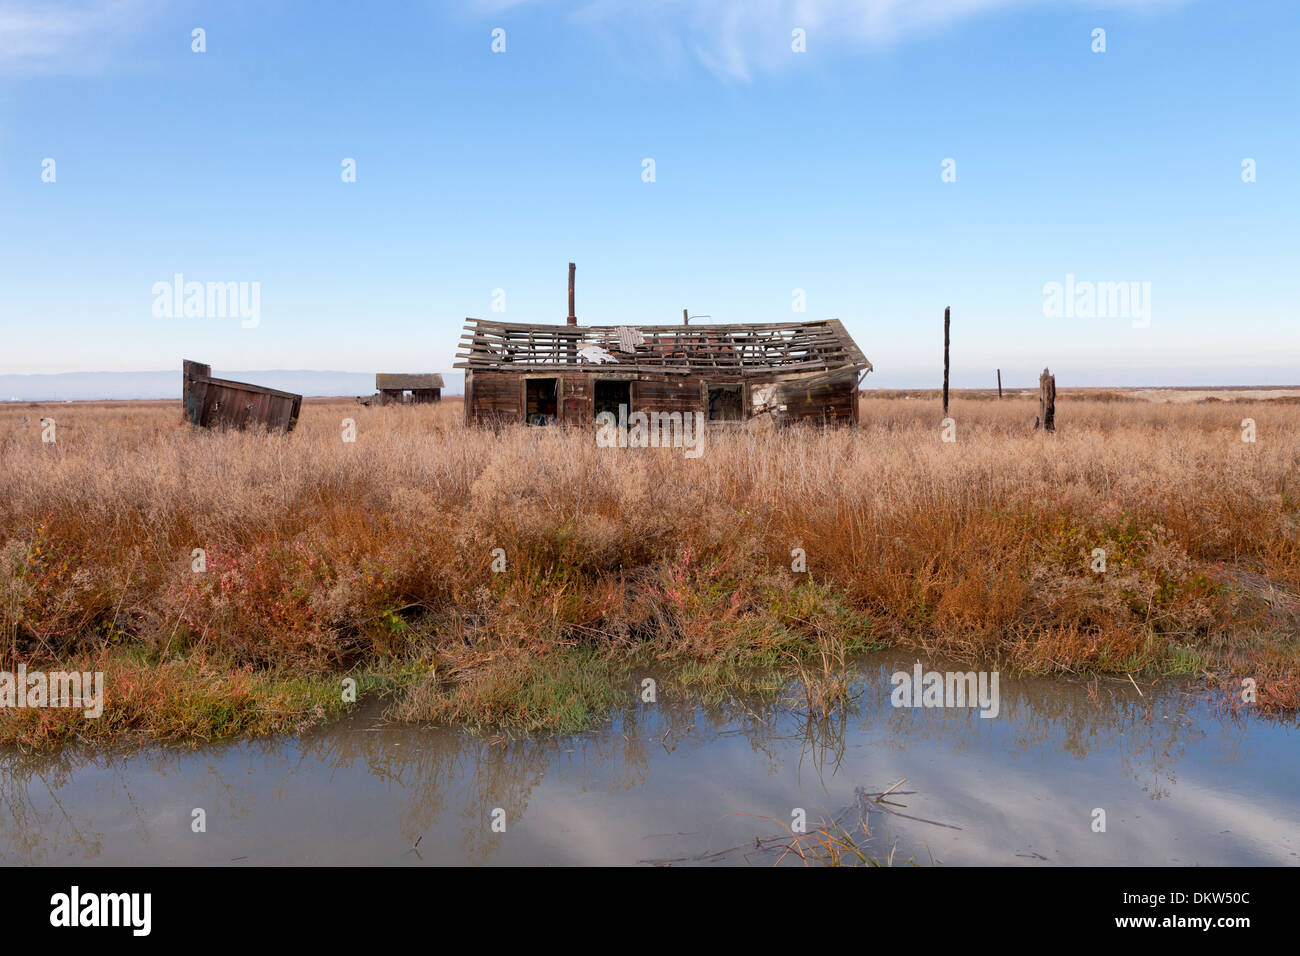 An abandoned shack slowly sinks into the marsh at the ghost town of Drawbridge in southern San Francisco Bay. - Stock Image